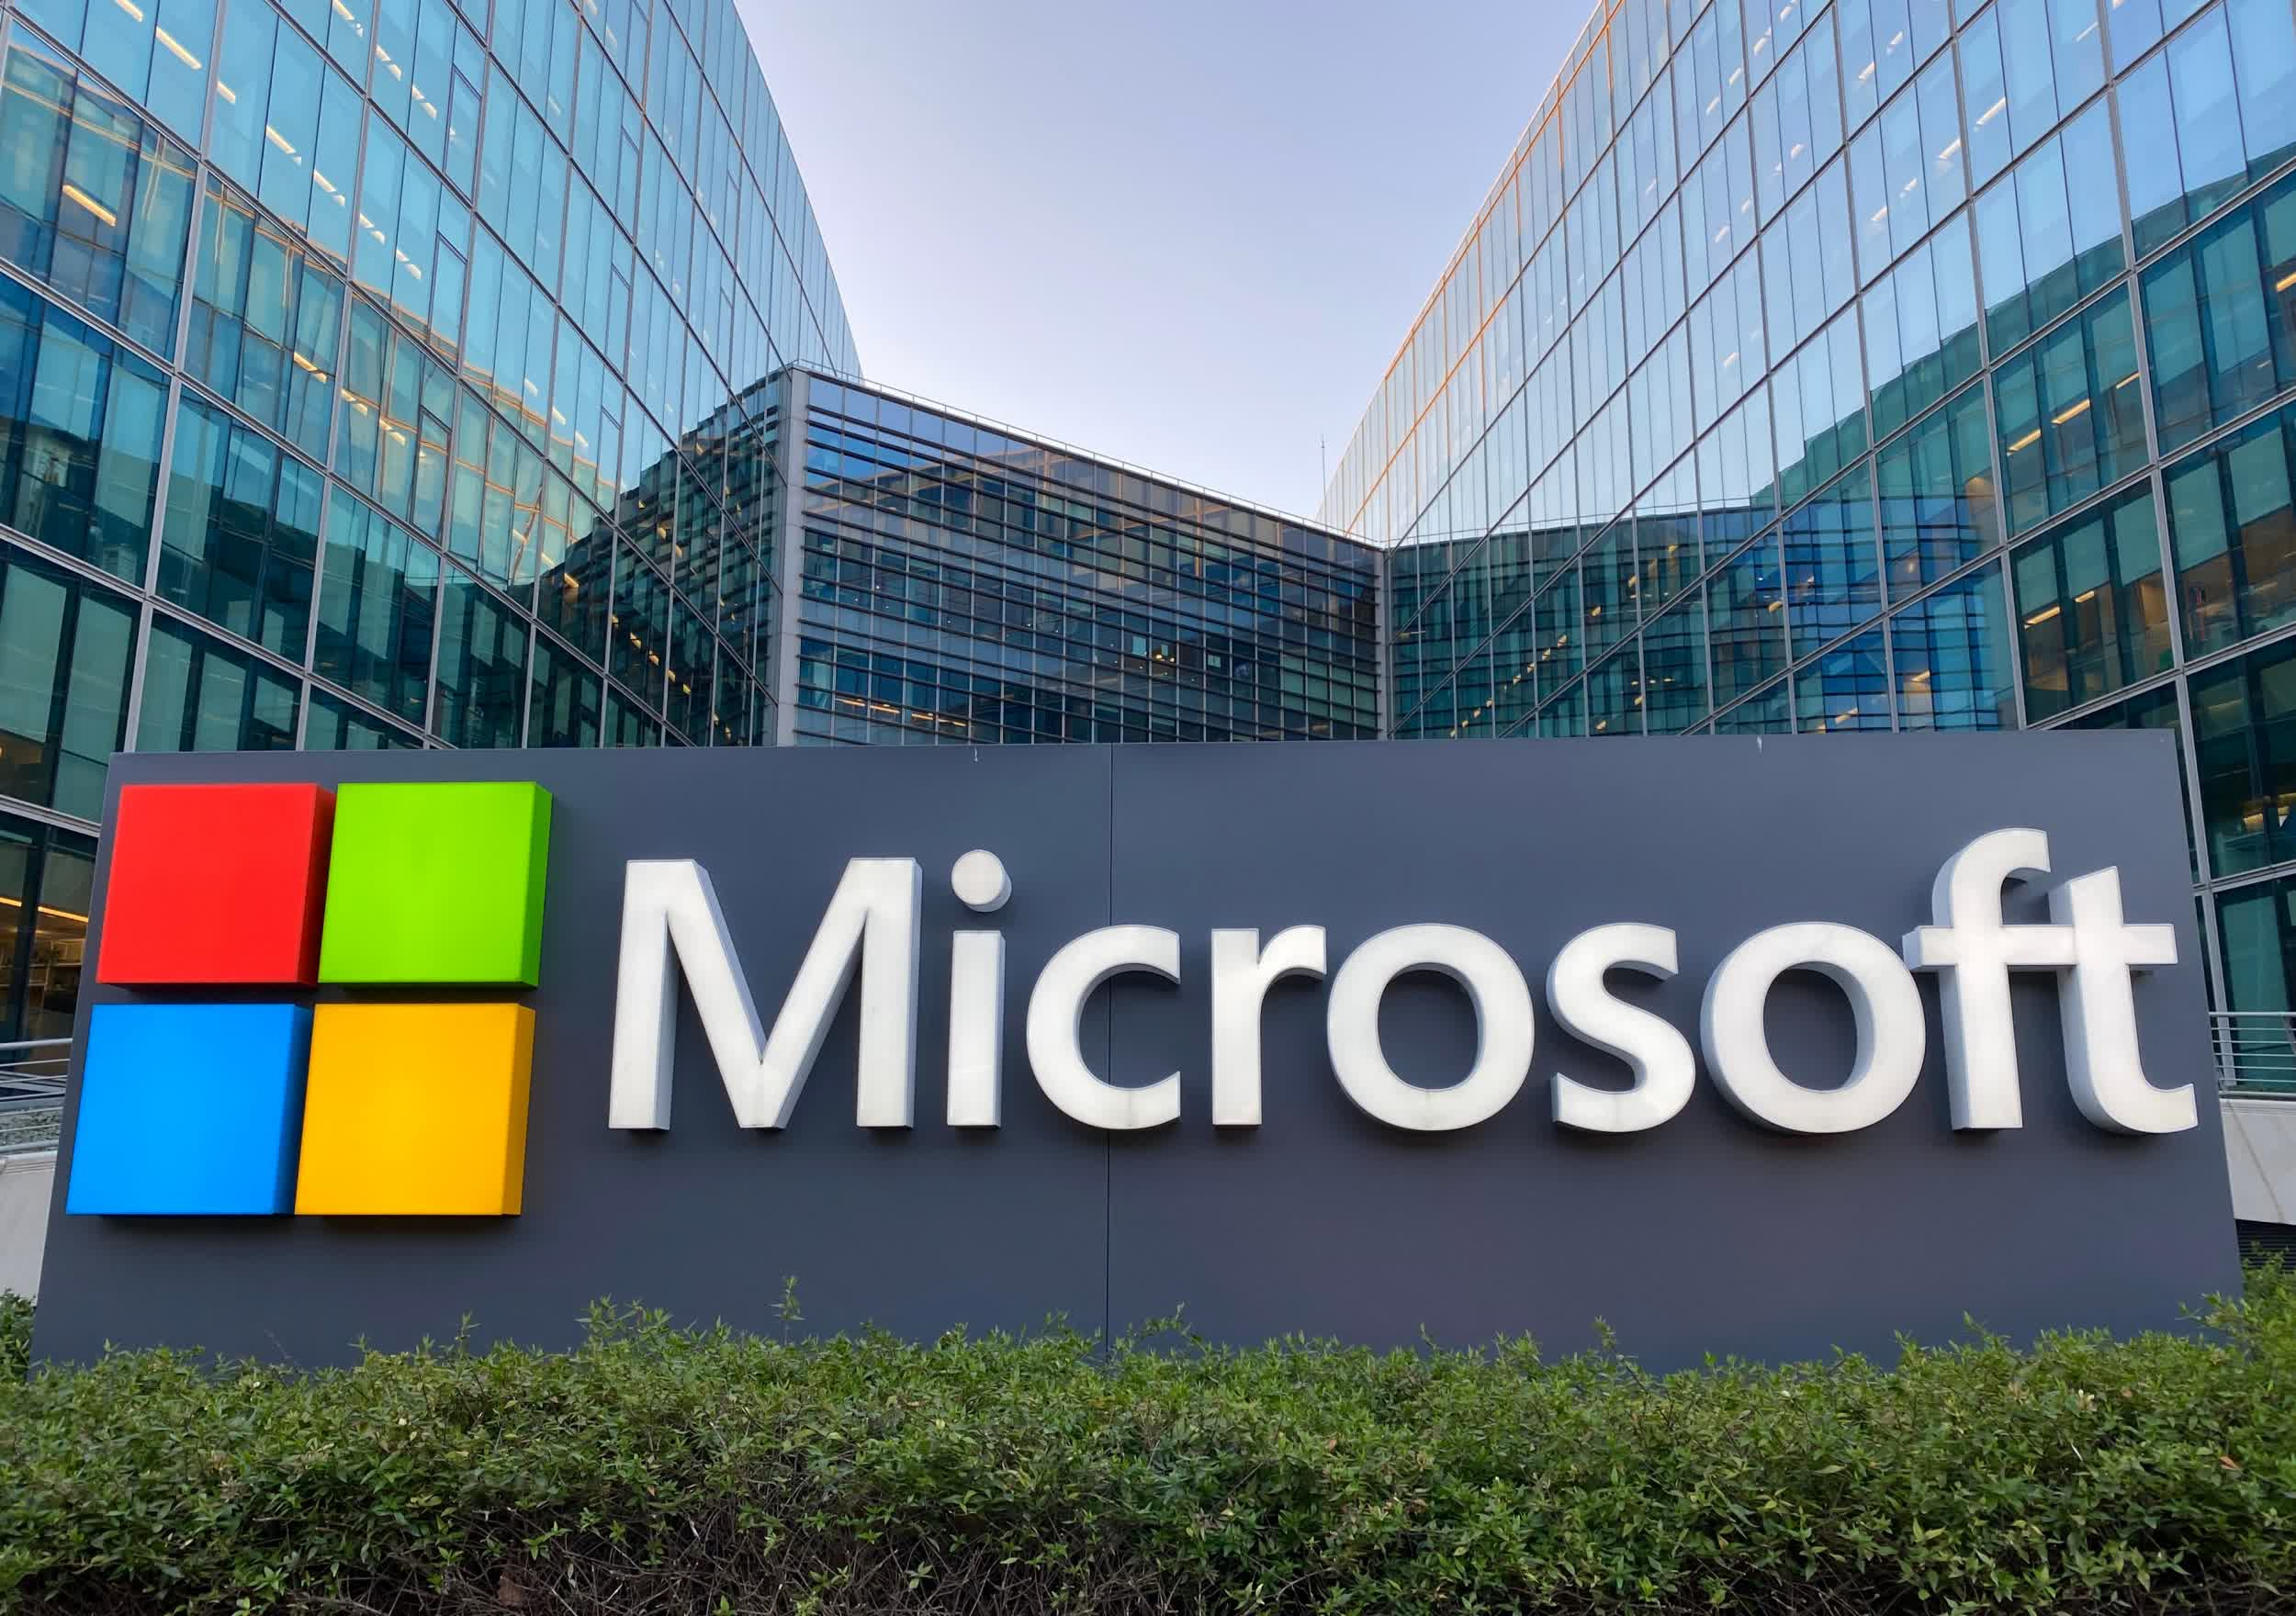 Microsoft details hybrid workplace strategy for the future of work